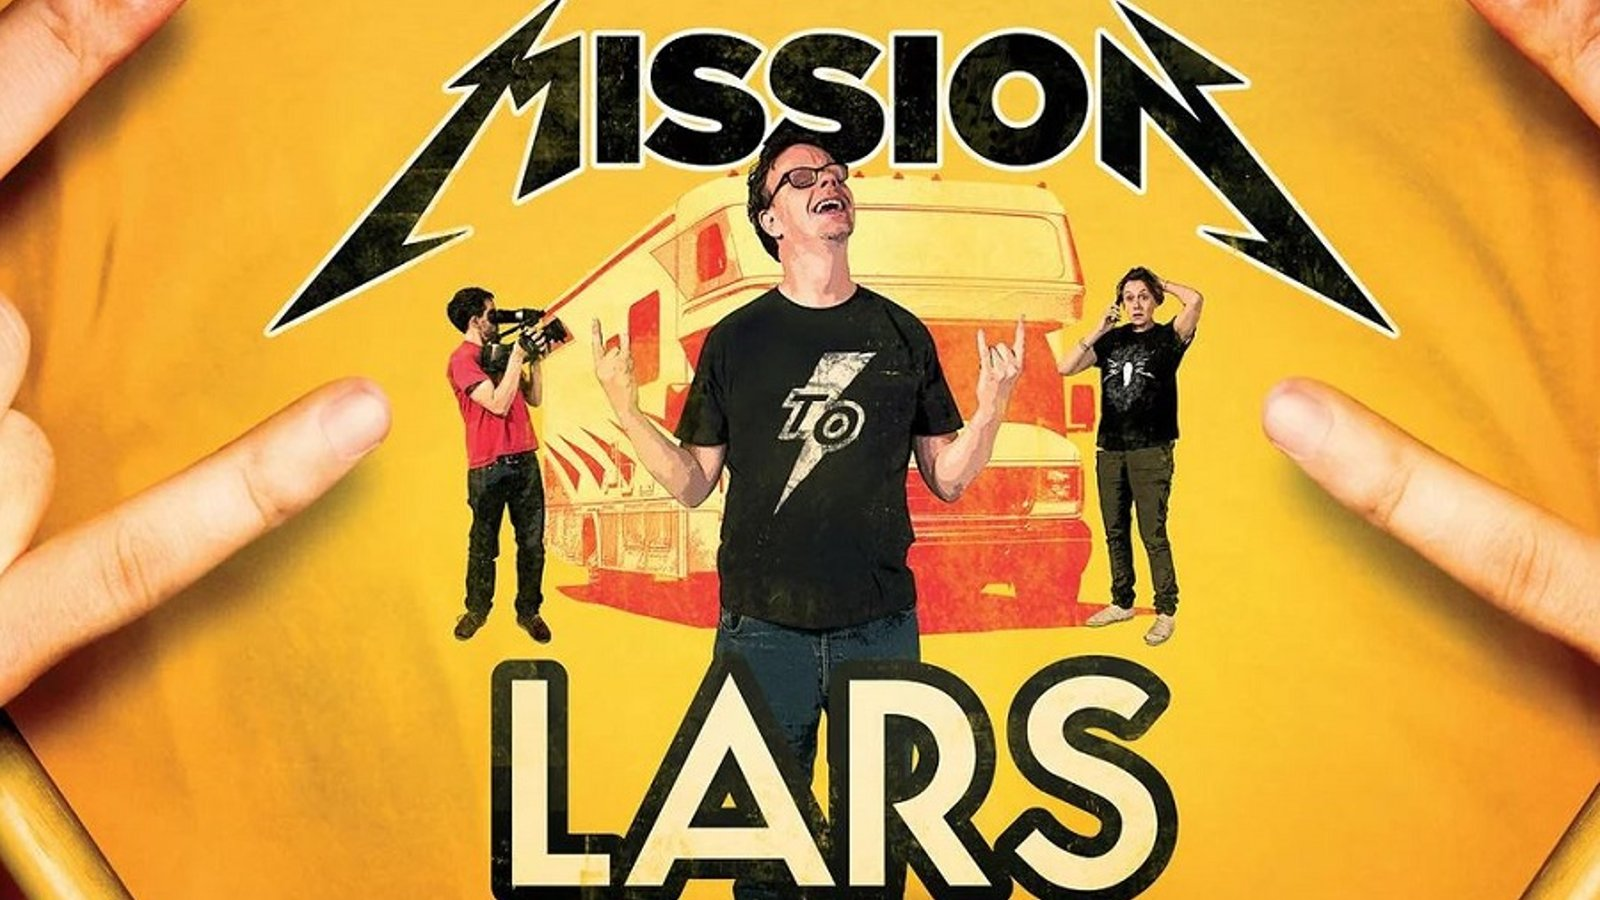 Mission to Lars - An Autistic Man Journeys to Meet His Musical Hero